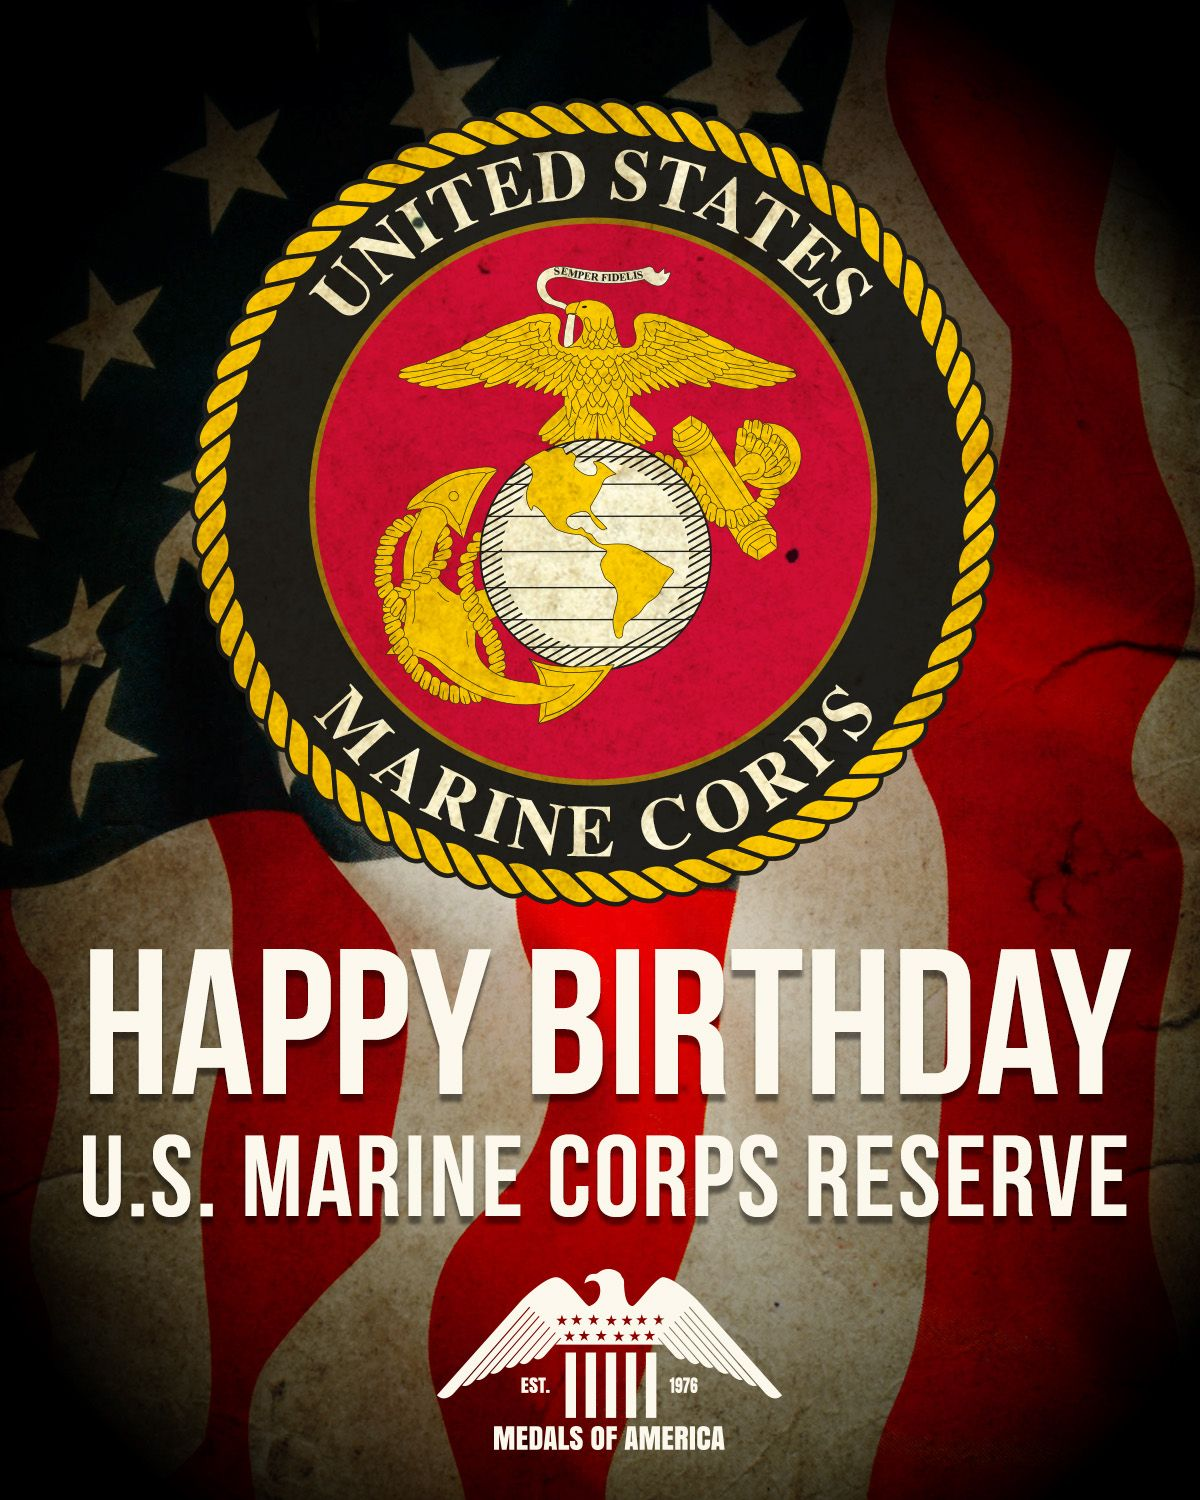 Happy Birthday to the U.S. Marine Corps Reserve! Thank you